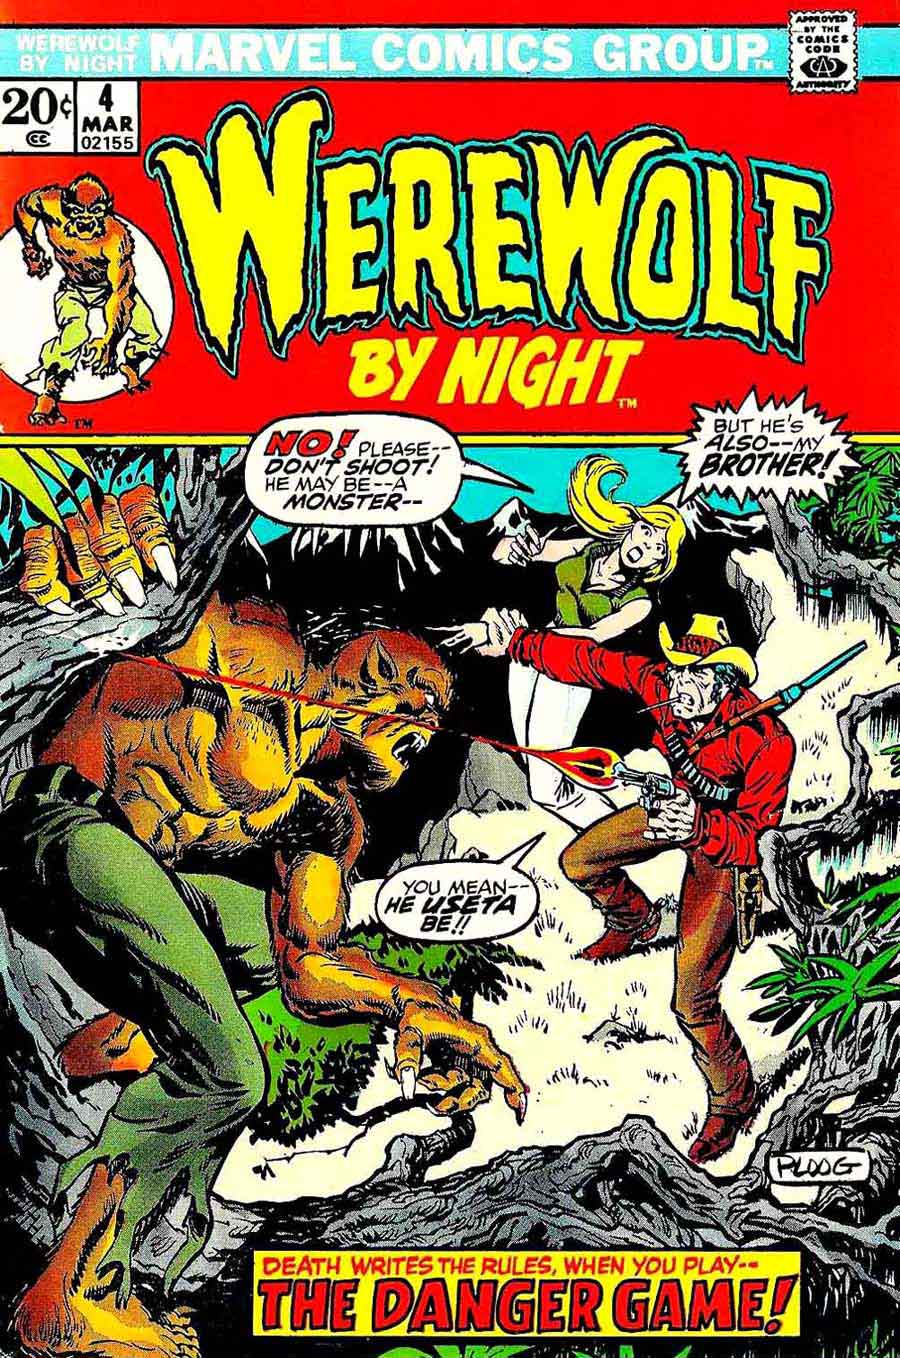 Werewolf by Night v1 #4 1970s marvel comic book cover art by Mike Ploog